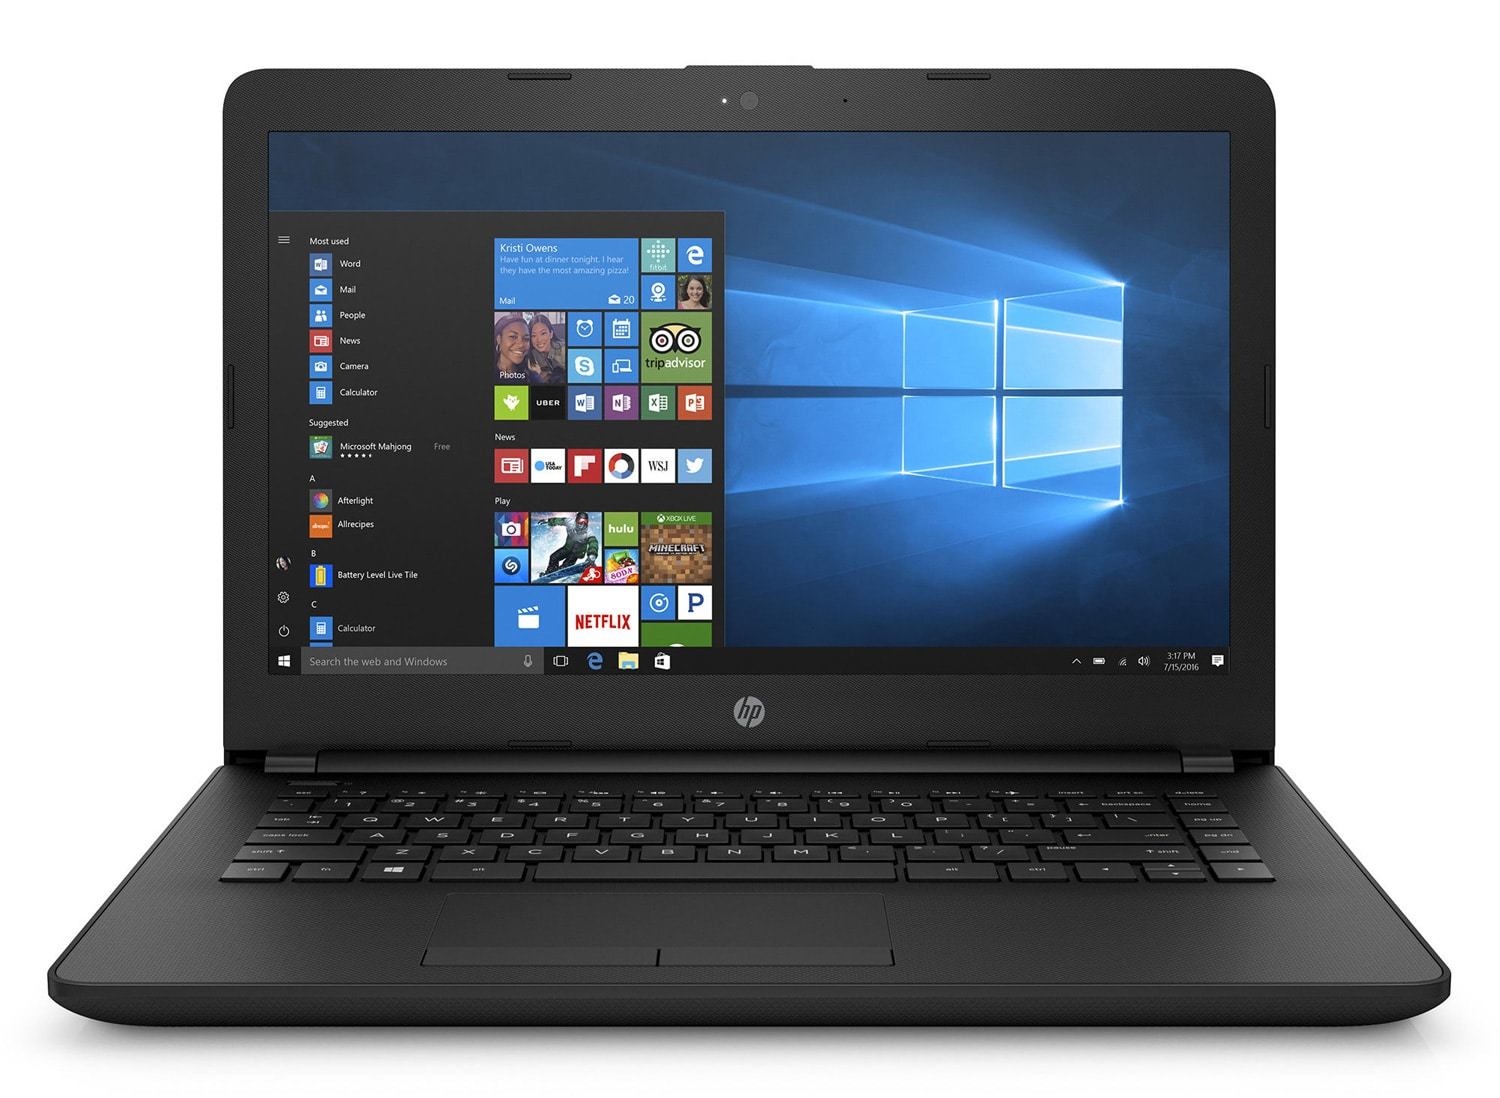 HP 14-bs010nf, PC portable 14 pouces IPS Full HD SSD noir (419€)